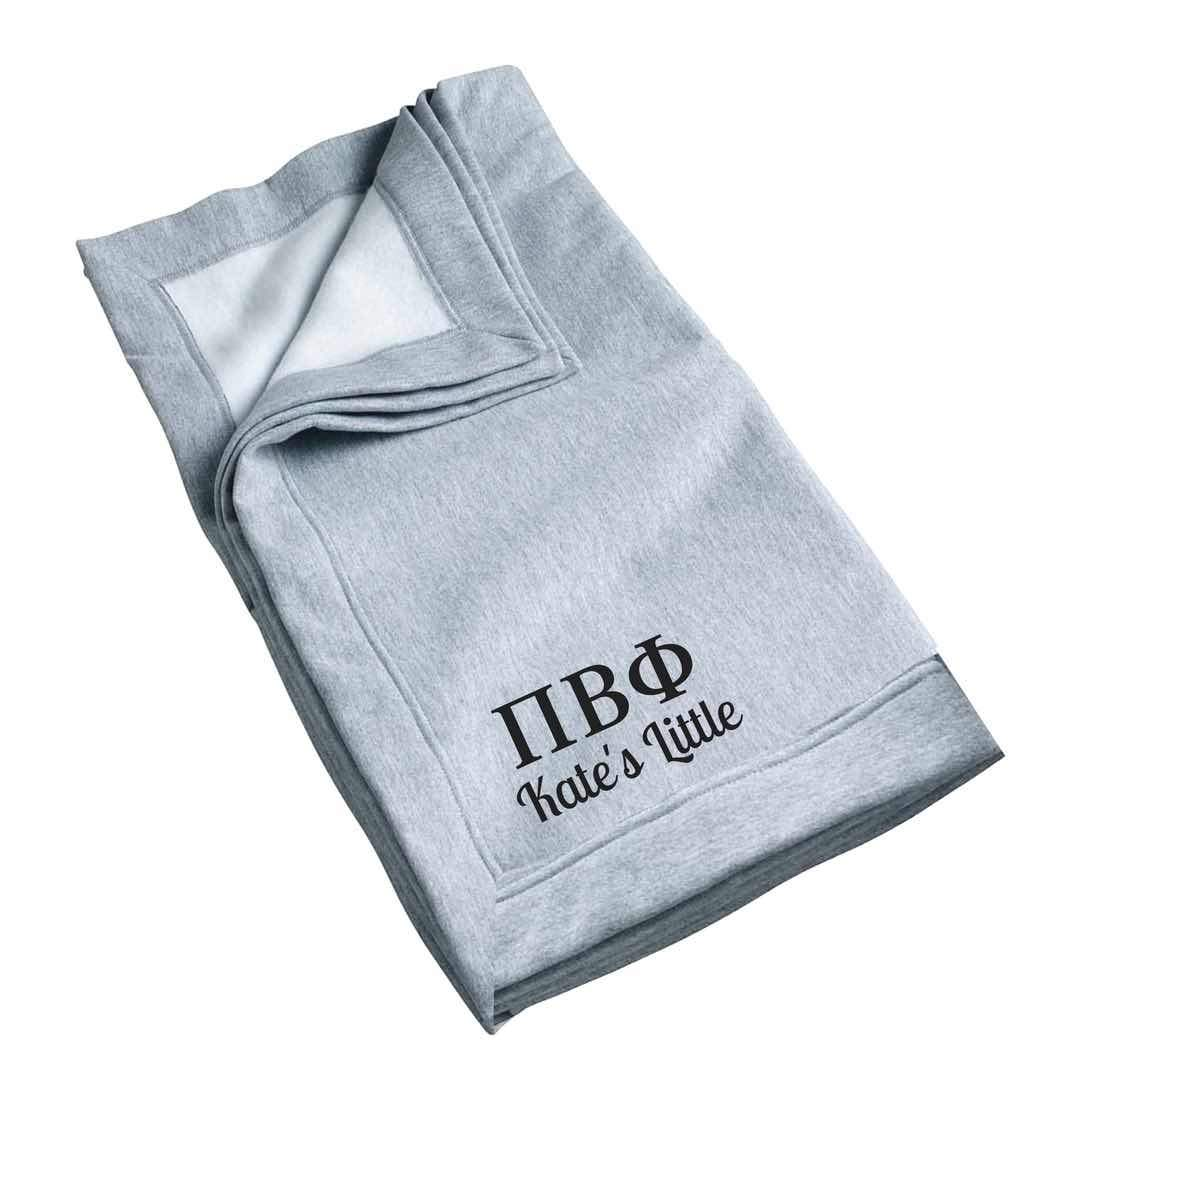 Pi Beta Phi Little Blanket, Recommended One Size Fits All Personalized Big Little Gift